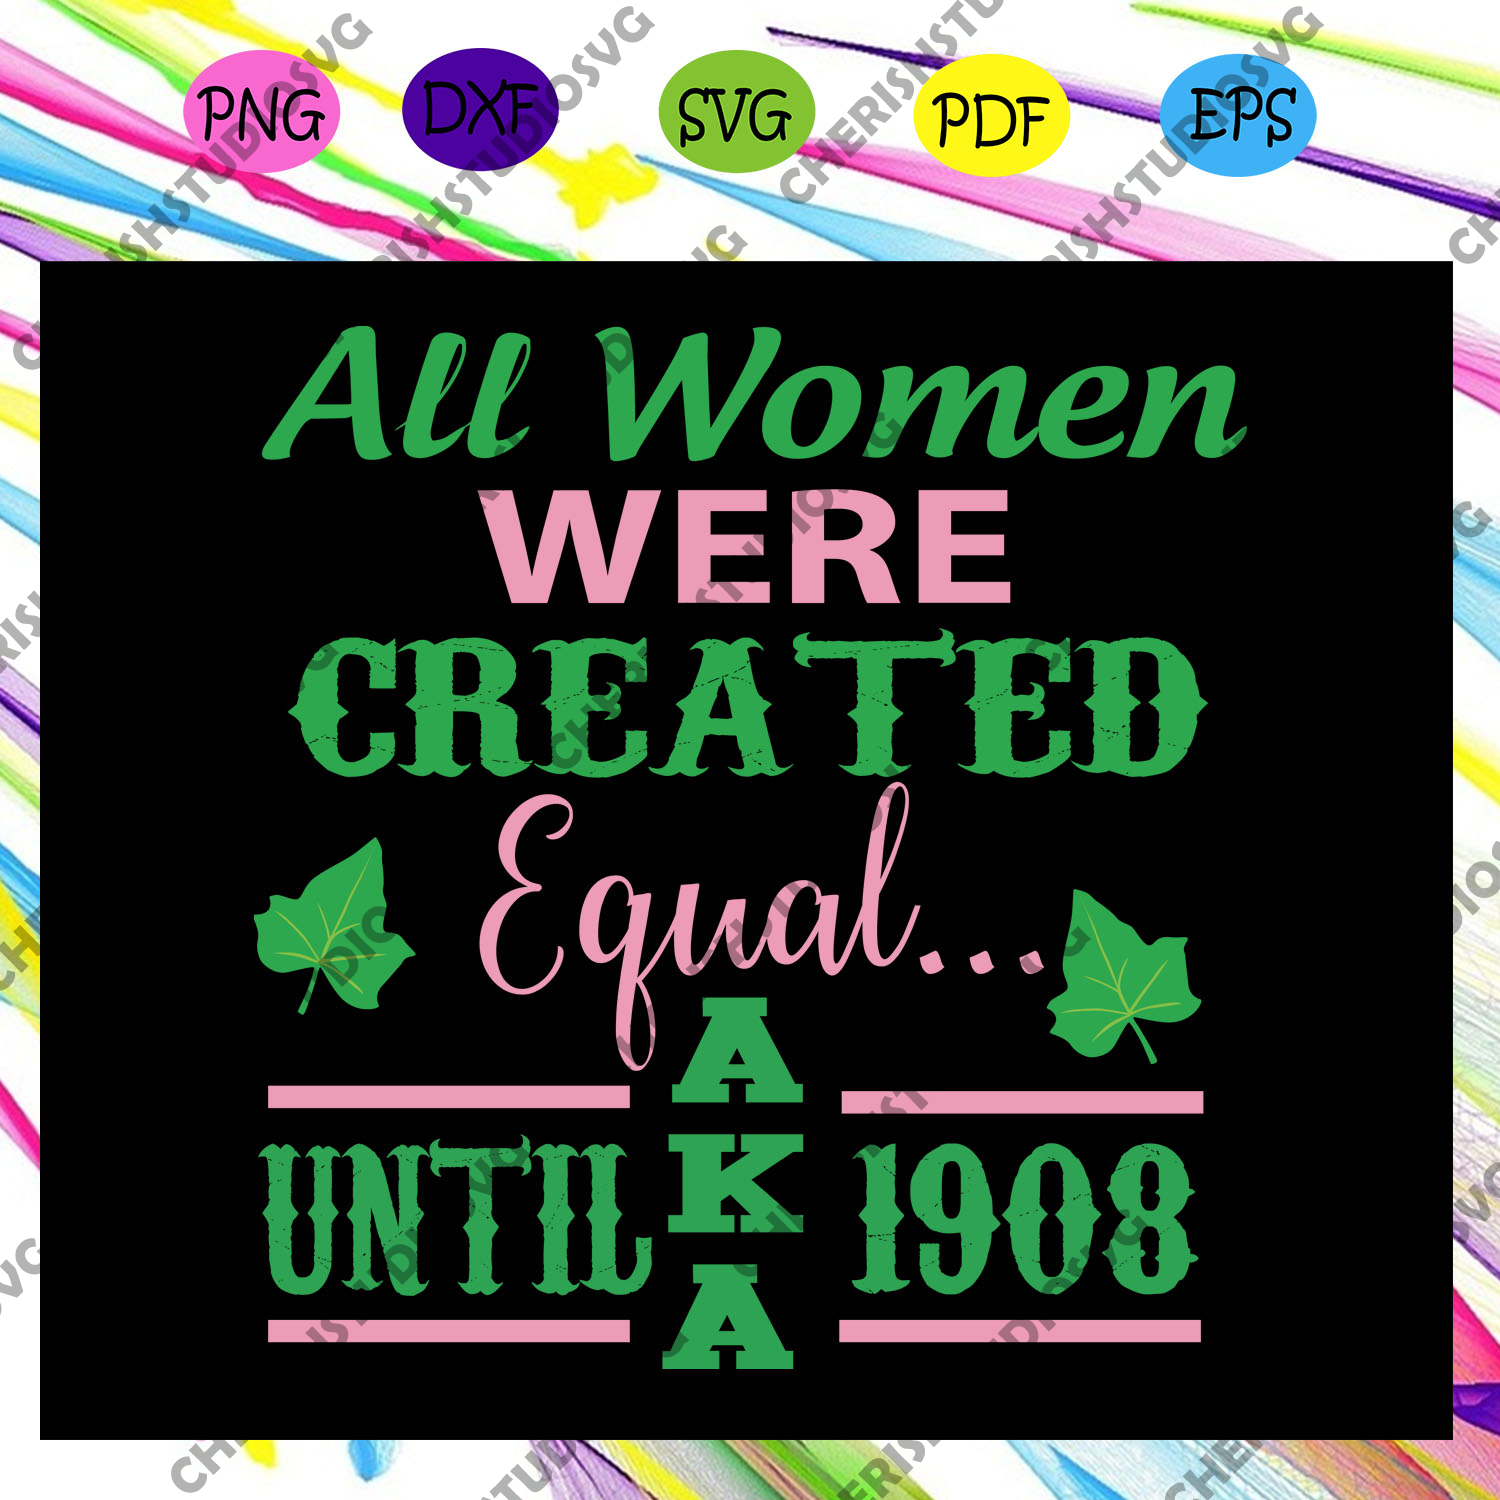 All women were created equal until aka 1908, aka sorority gift, aka sorority svg, Aka svg, aka shirt, aka sorority, alpha kappa alpha svg, alpha kappa alpha shirt, Files For Silhouette, Files For Cricut, SVG, DXF, EPS, PNG, Instant Download